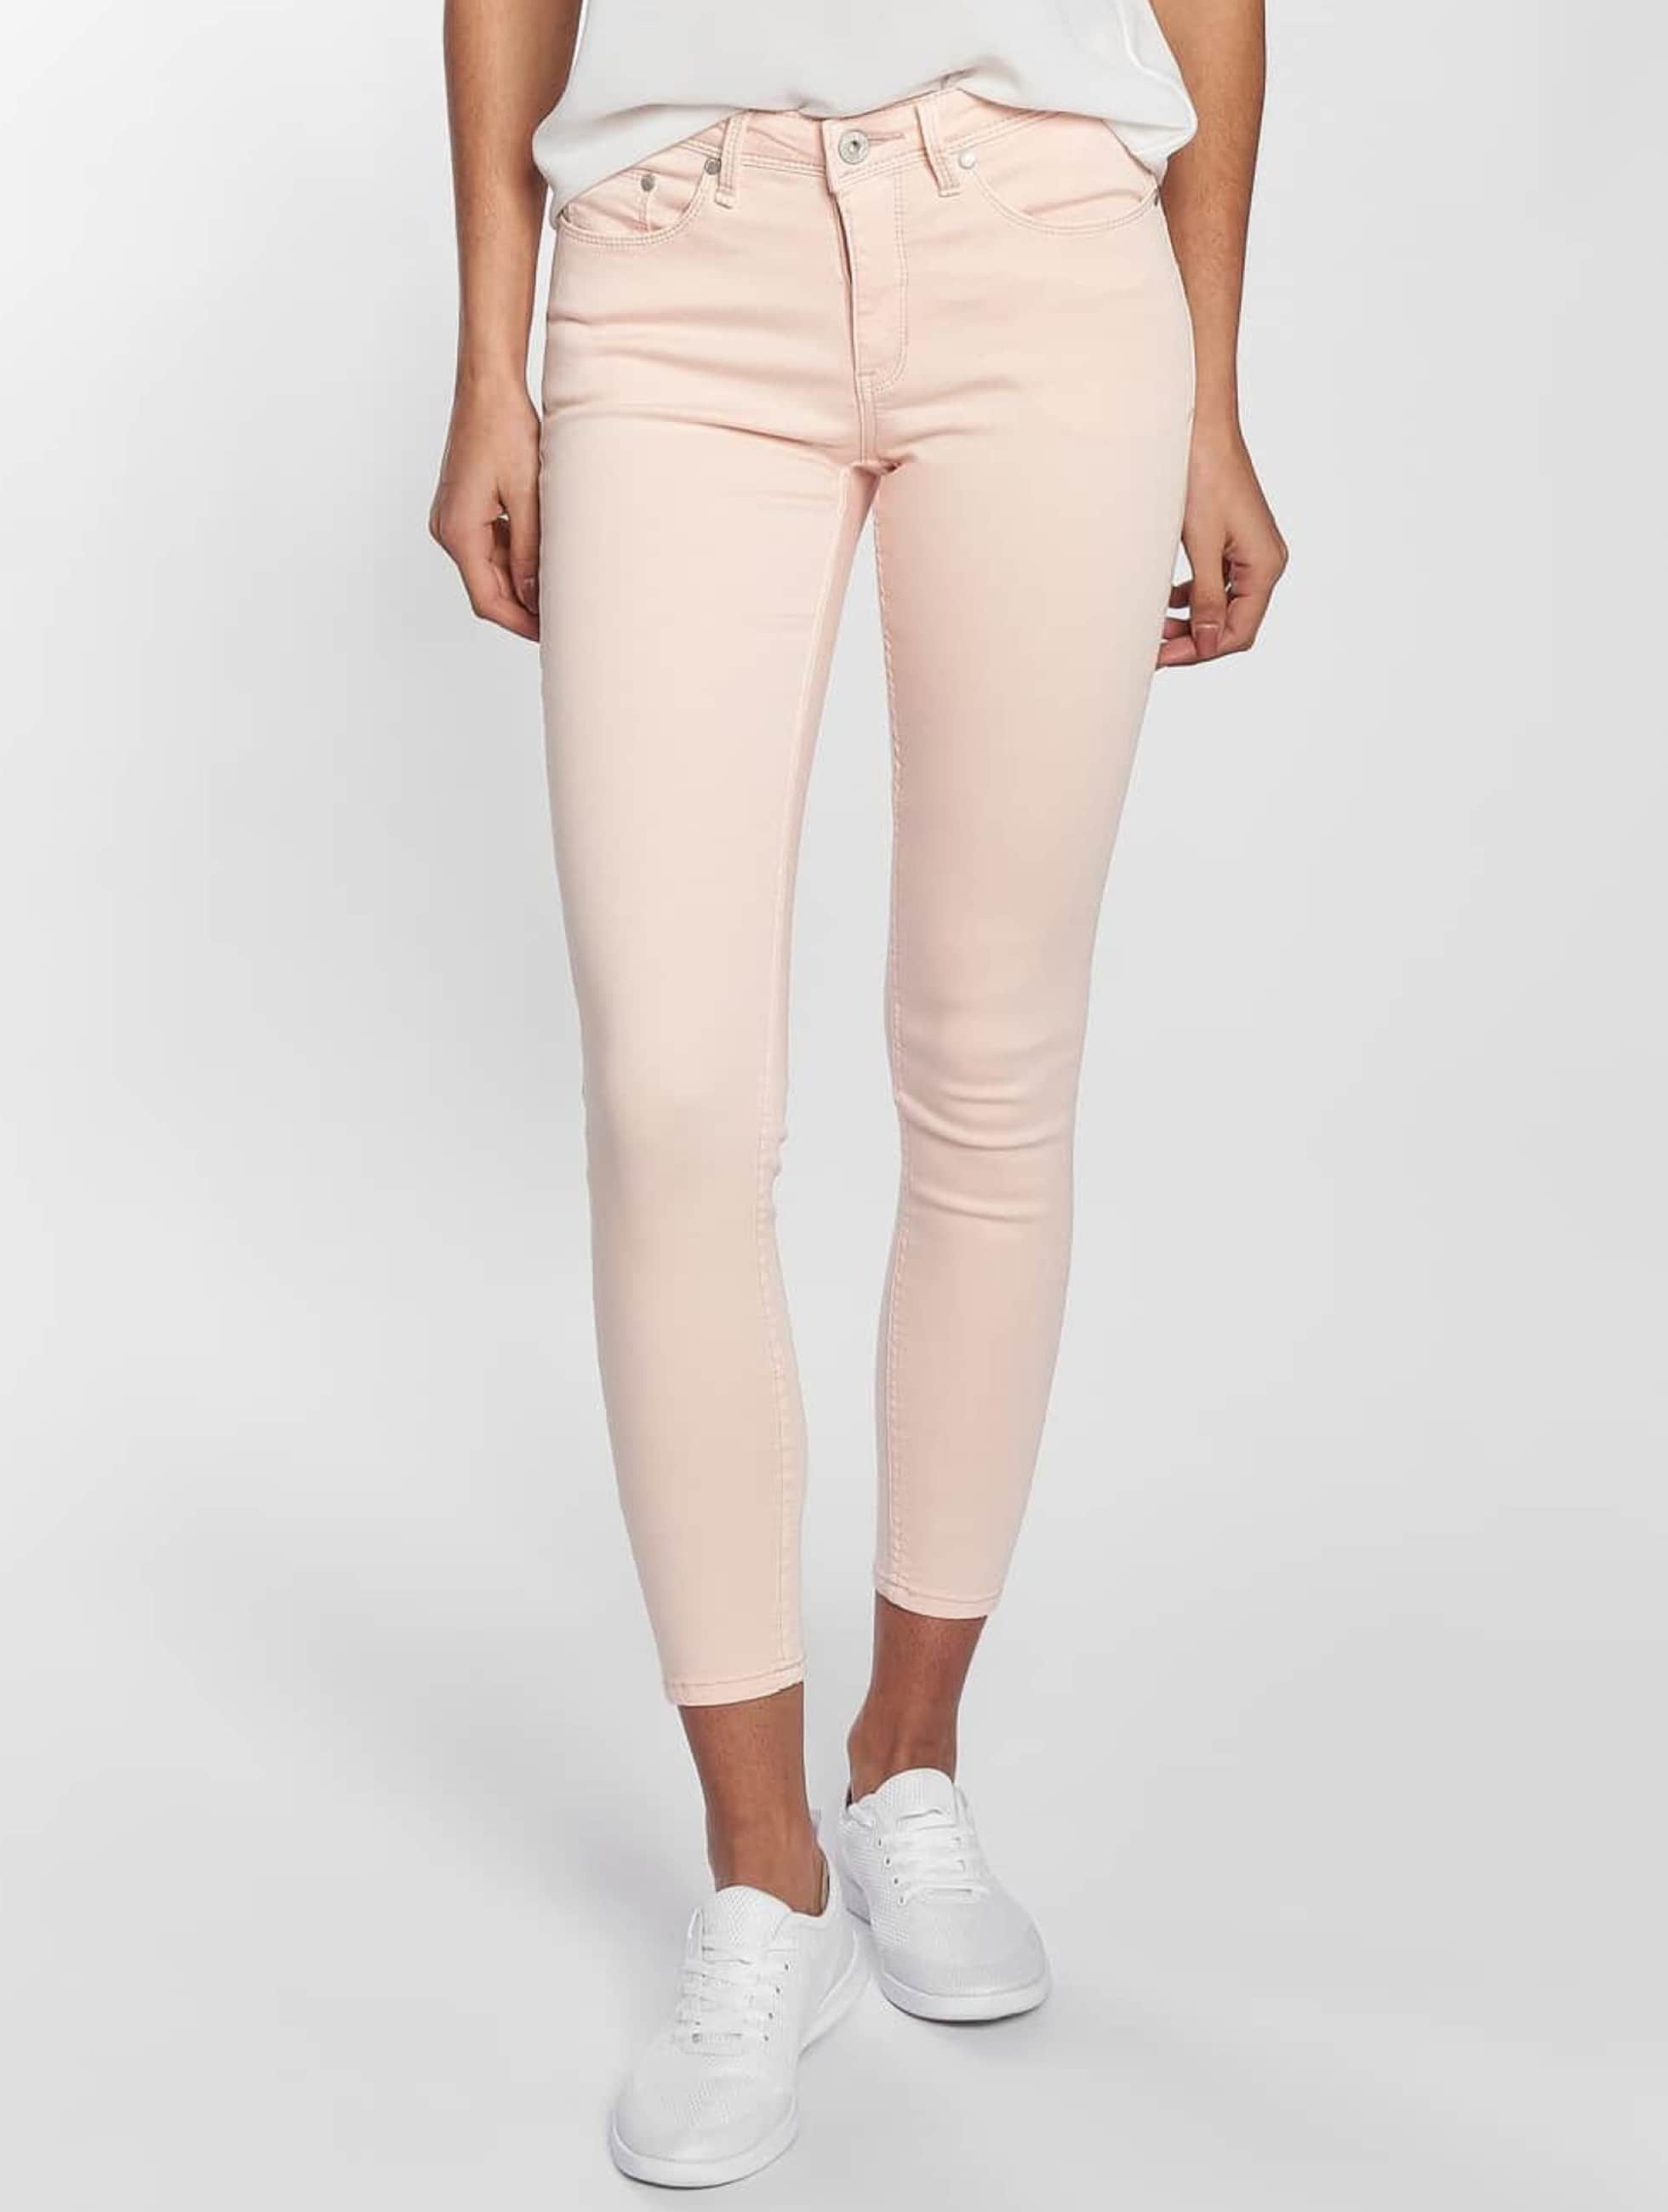 info for 3899e 28813 Blend She Bright Jazy Crop Skinny Jeans Cameo Rose